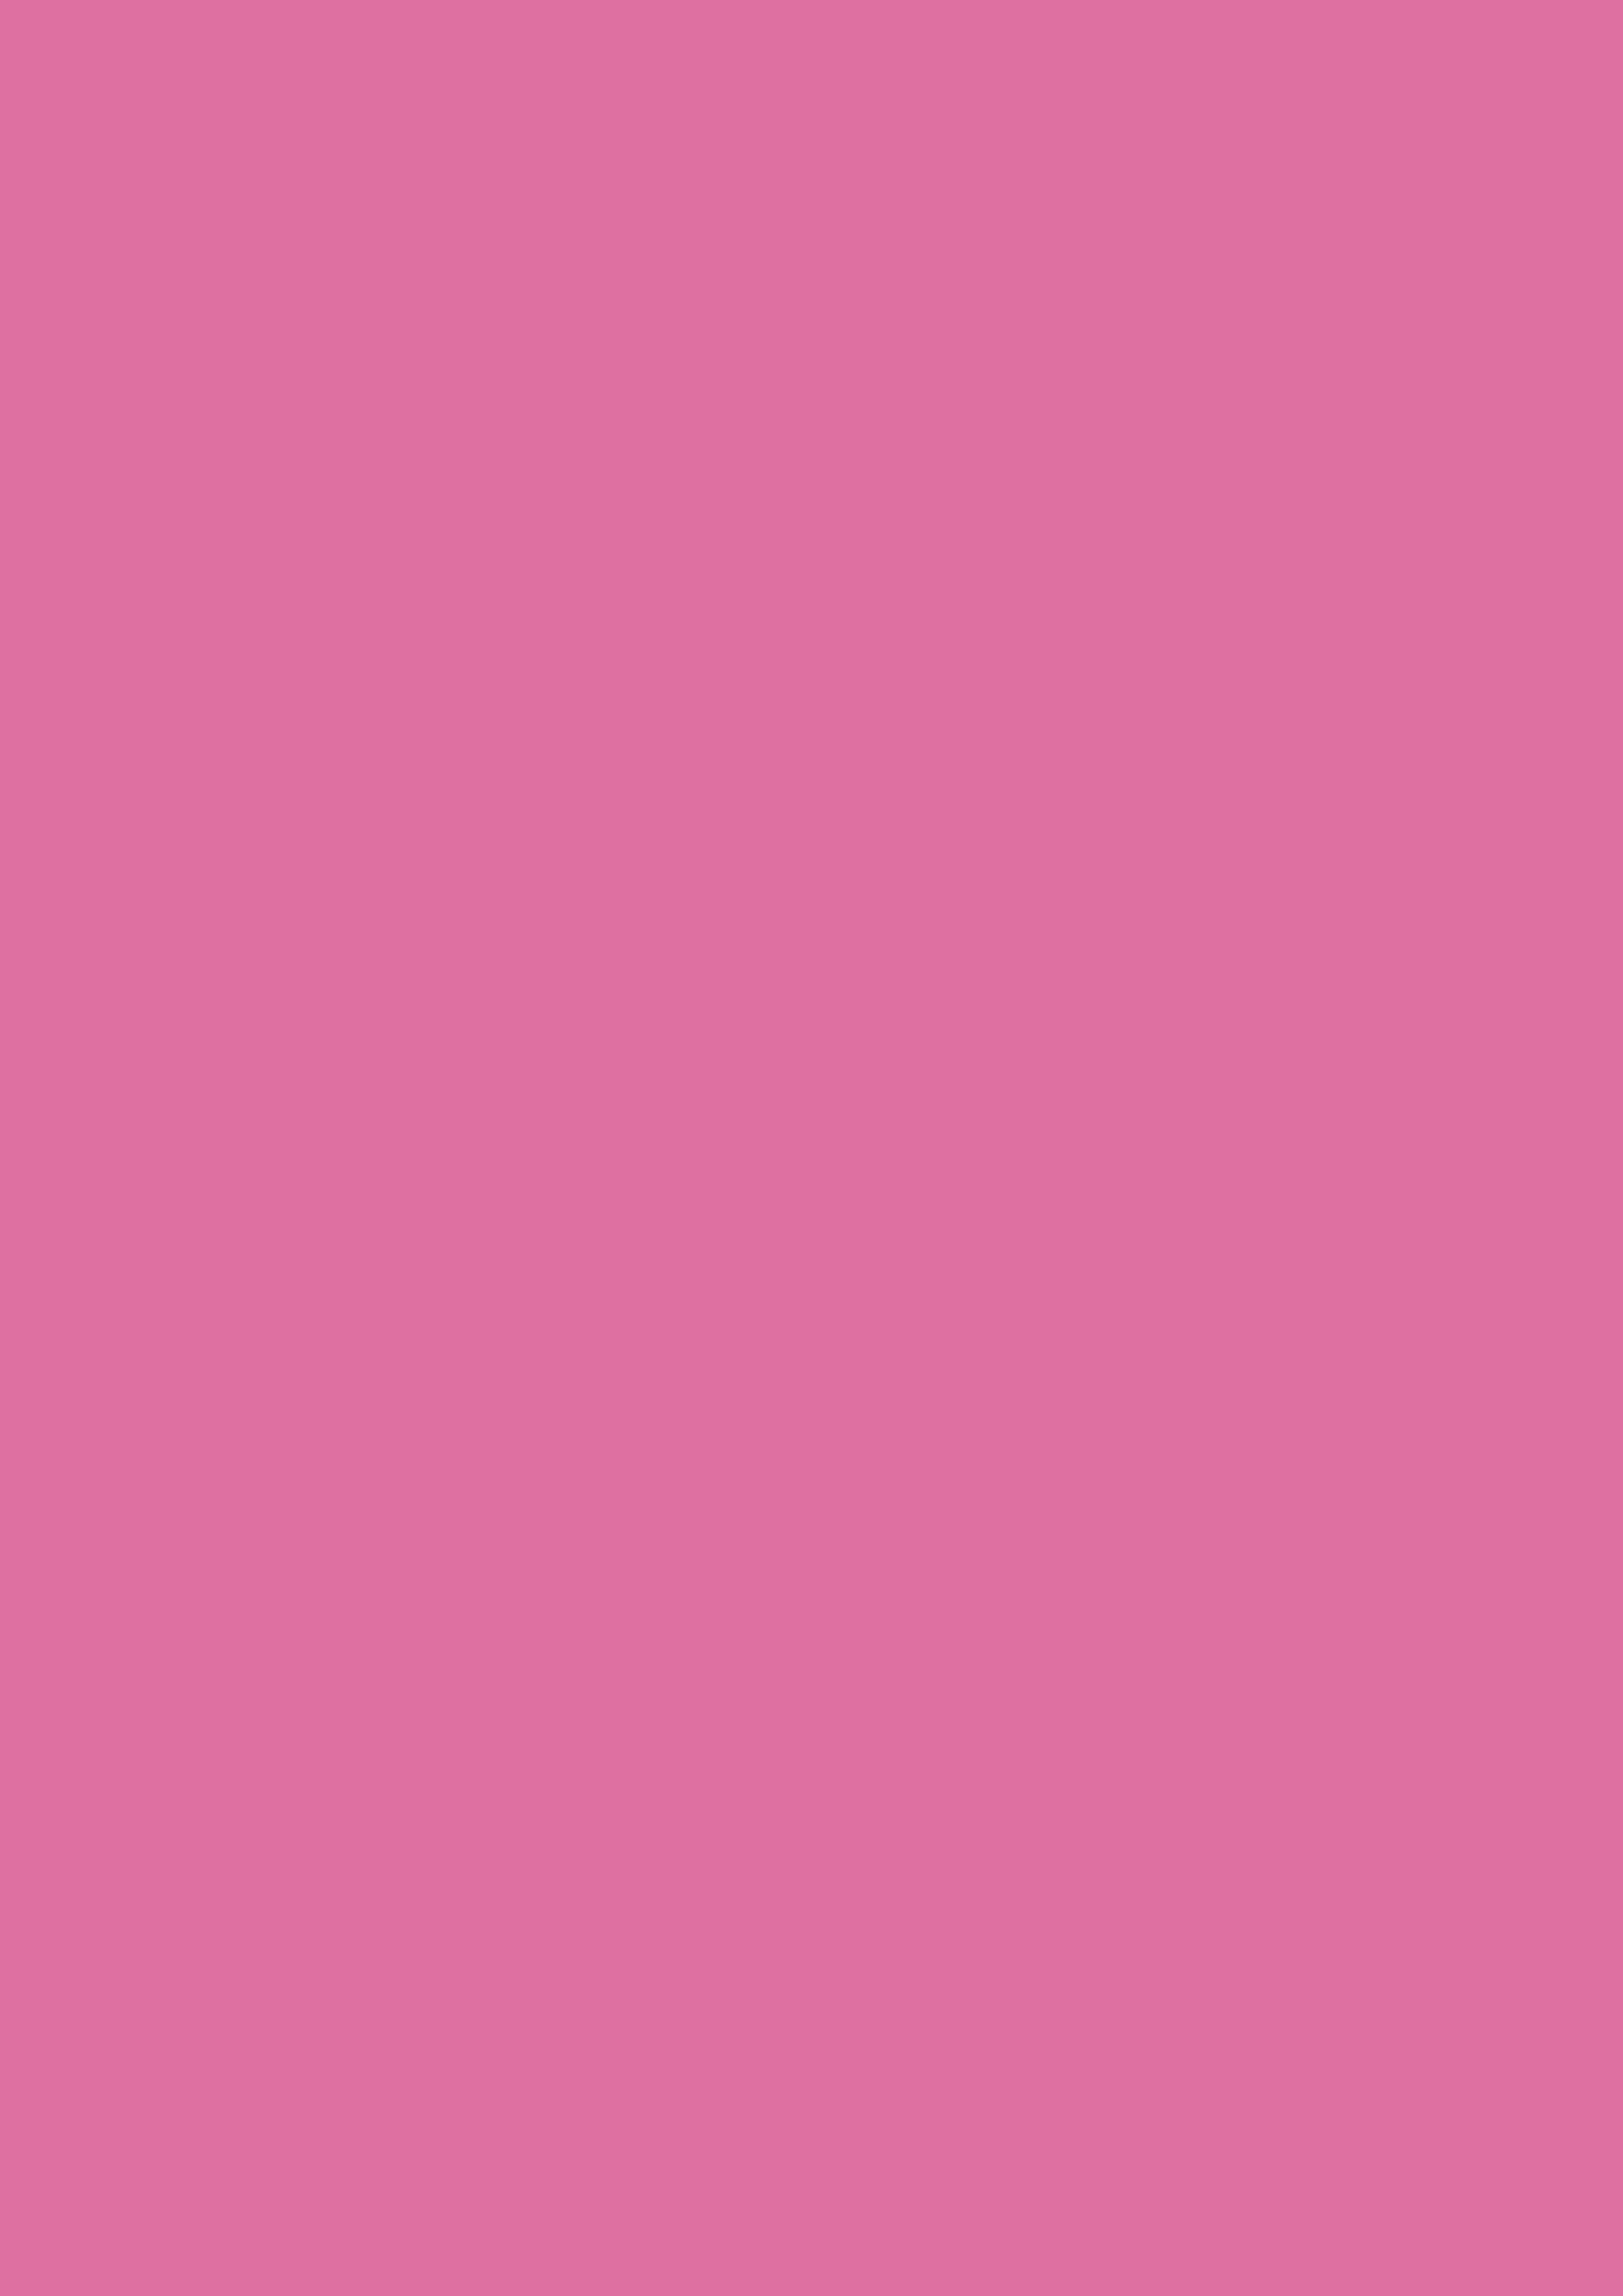 2480x3508 Thulian Pink Solid Color Background